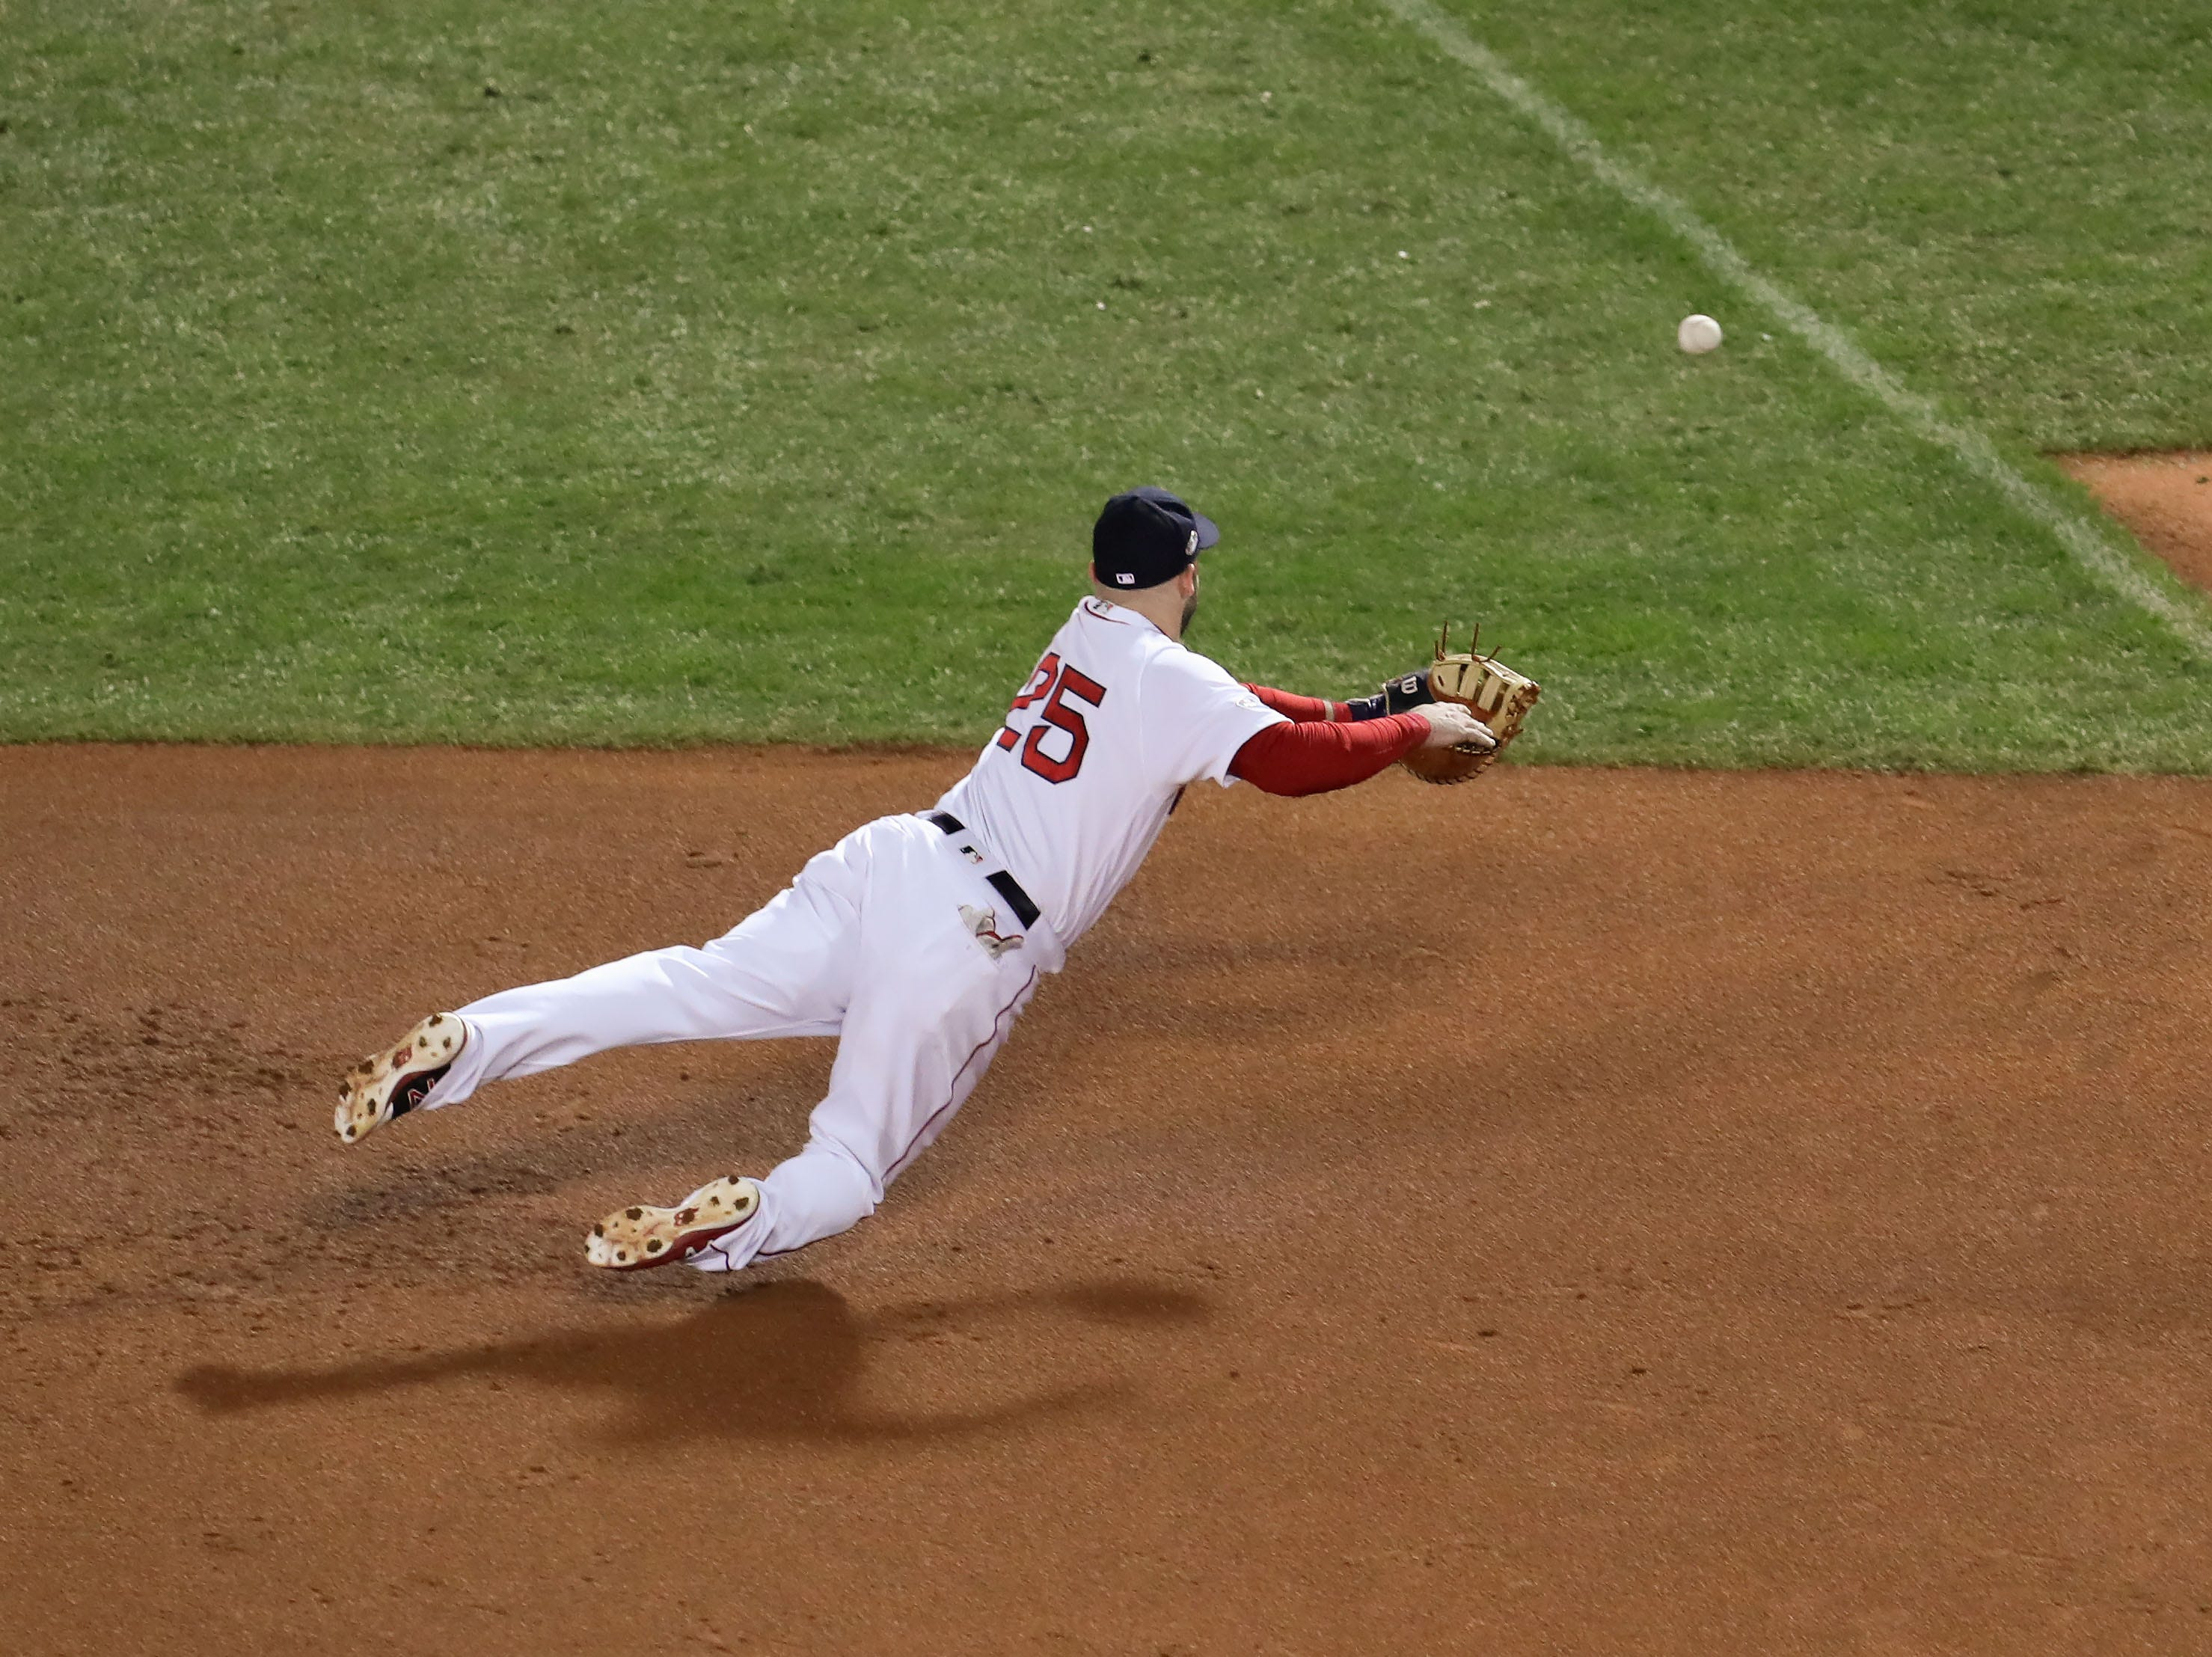 ALCS Game 2: Red Sox first baseman Steve Pearce dives but can't catch a ball hit by George Springer for a two-run double in the second inning.